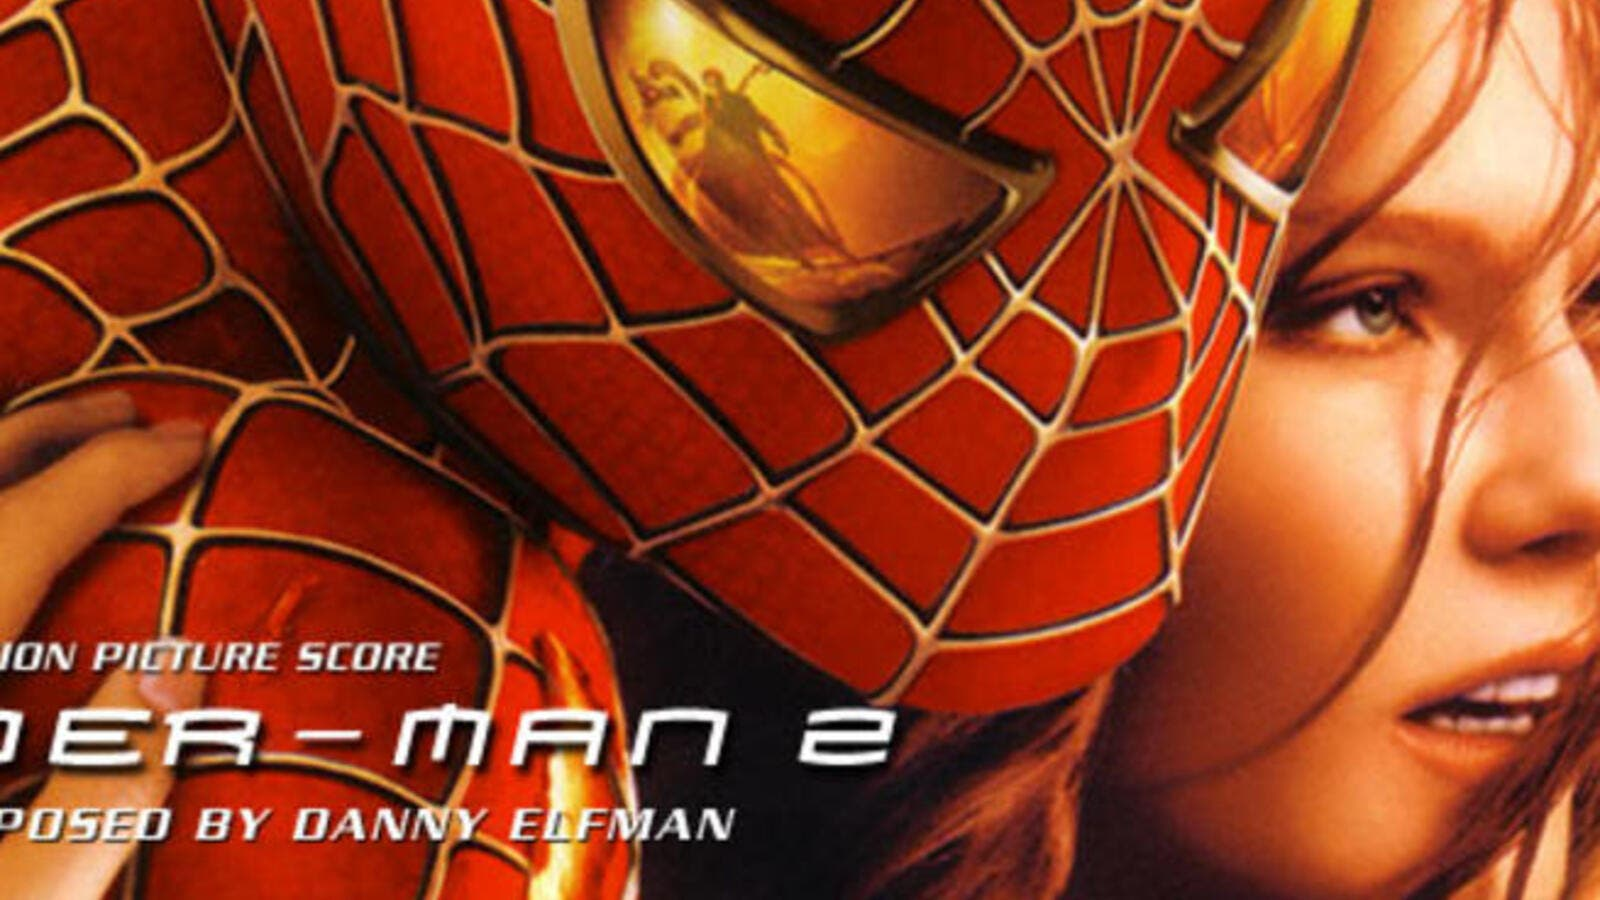 Spiderman 2 is going to hit theaters soon.